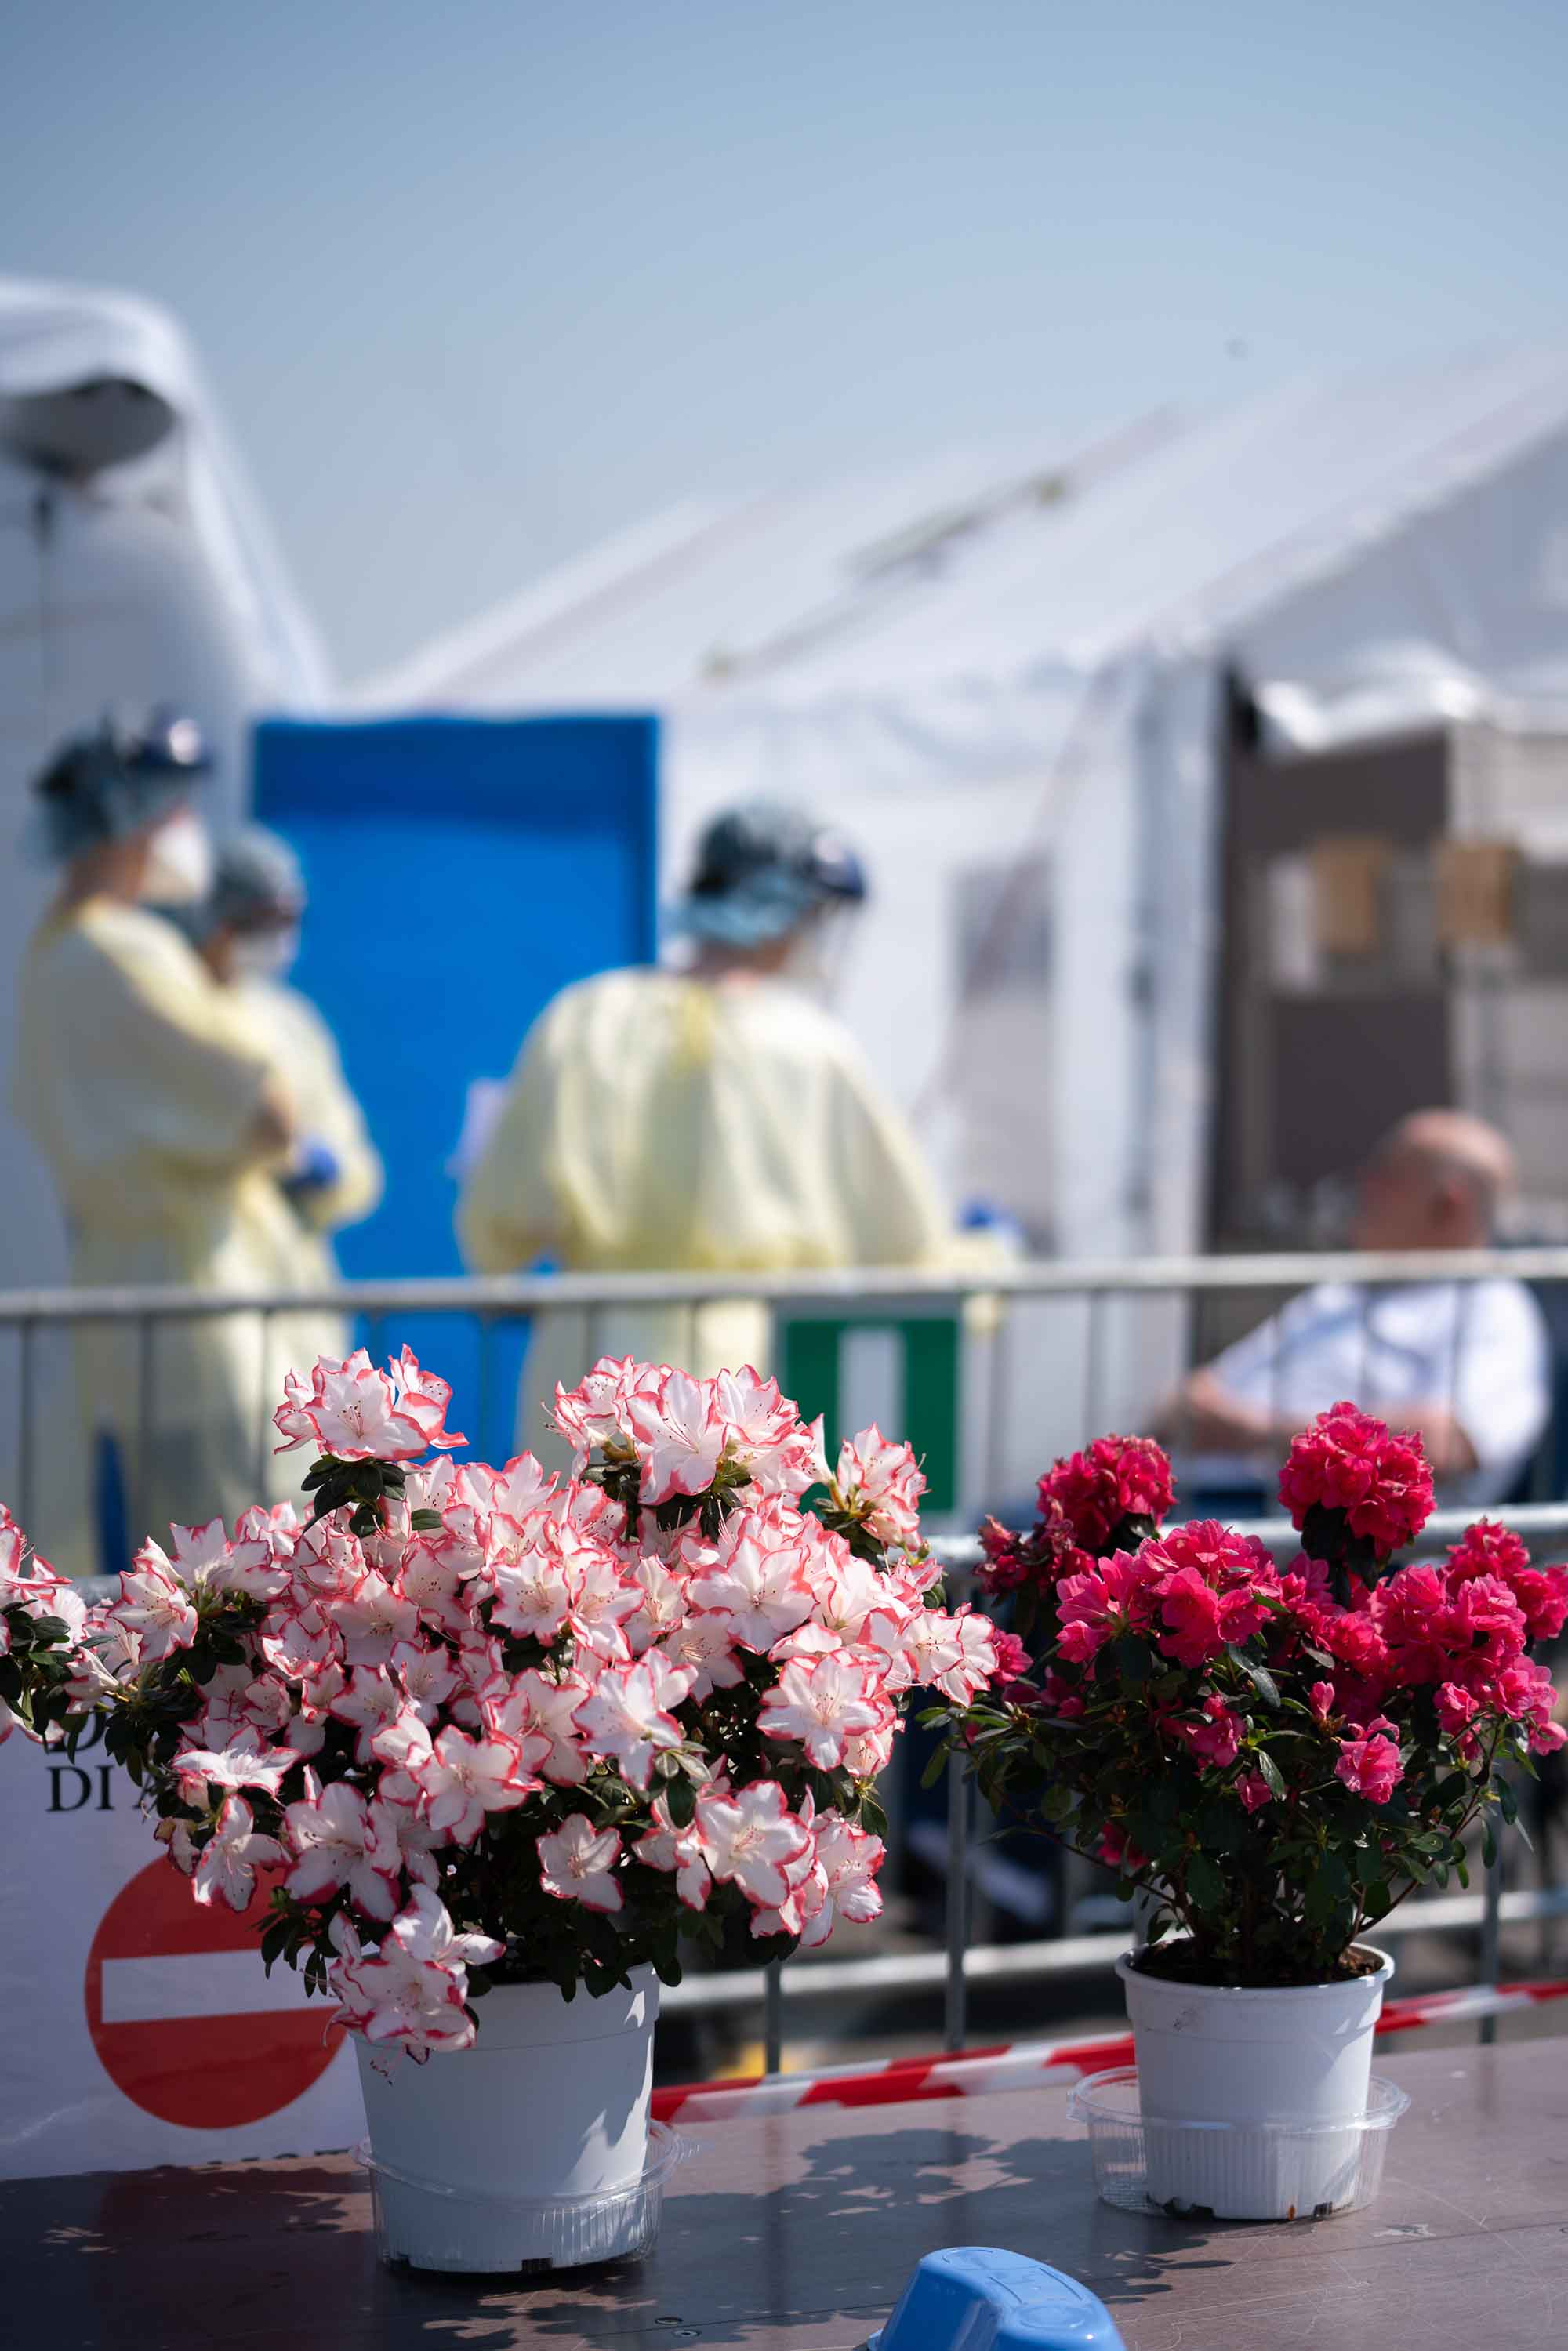 Donated flowers brightened spirits at the SP field hospital in Cremona, Italy during Easter week.